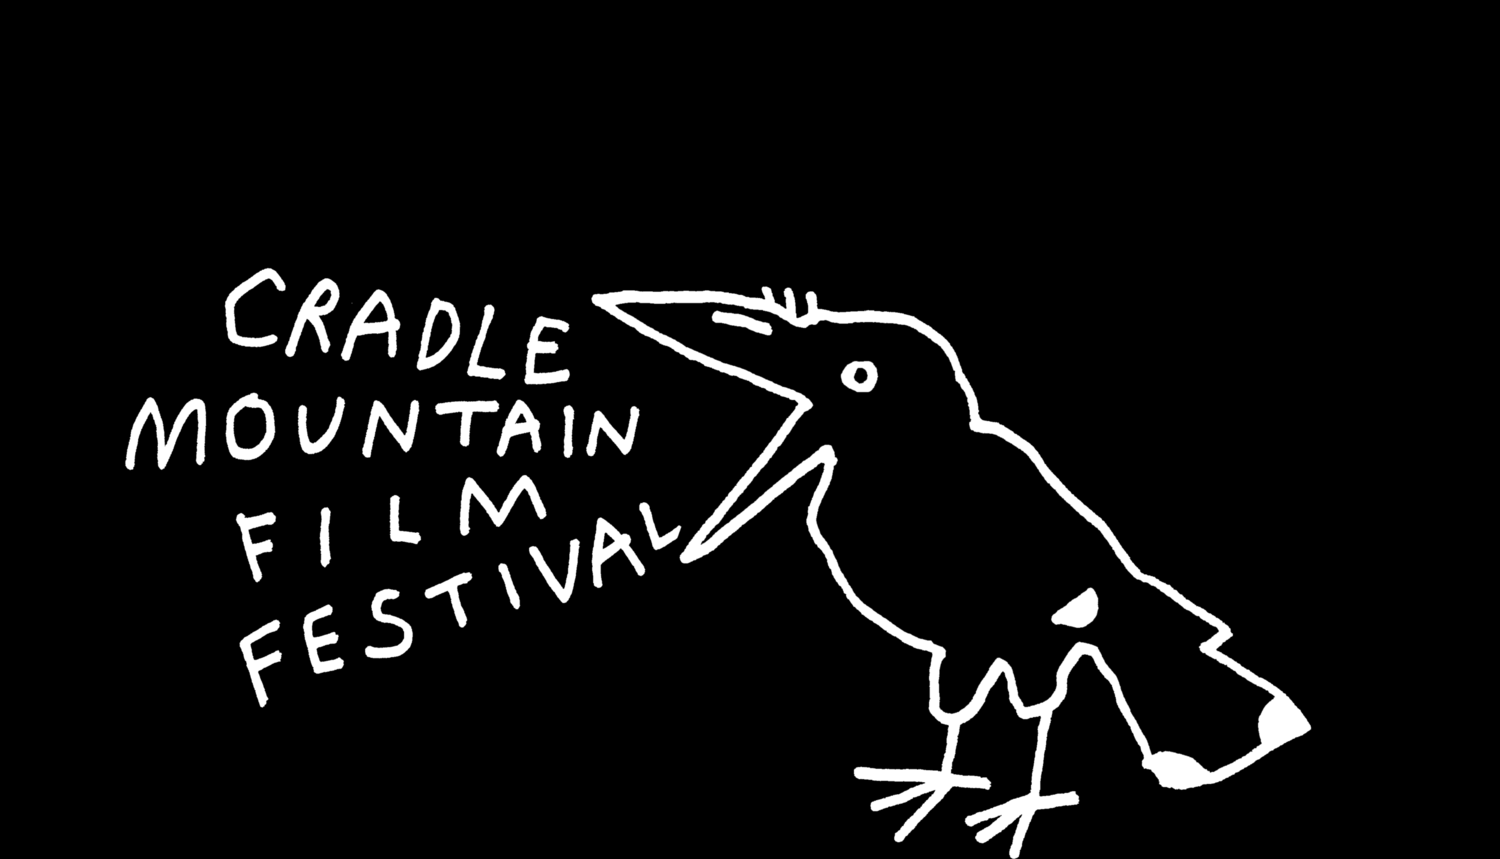 Cradle Mountain Film Fest April 6-8 2018